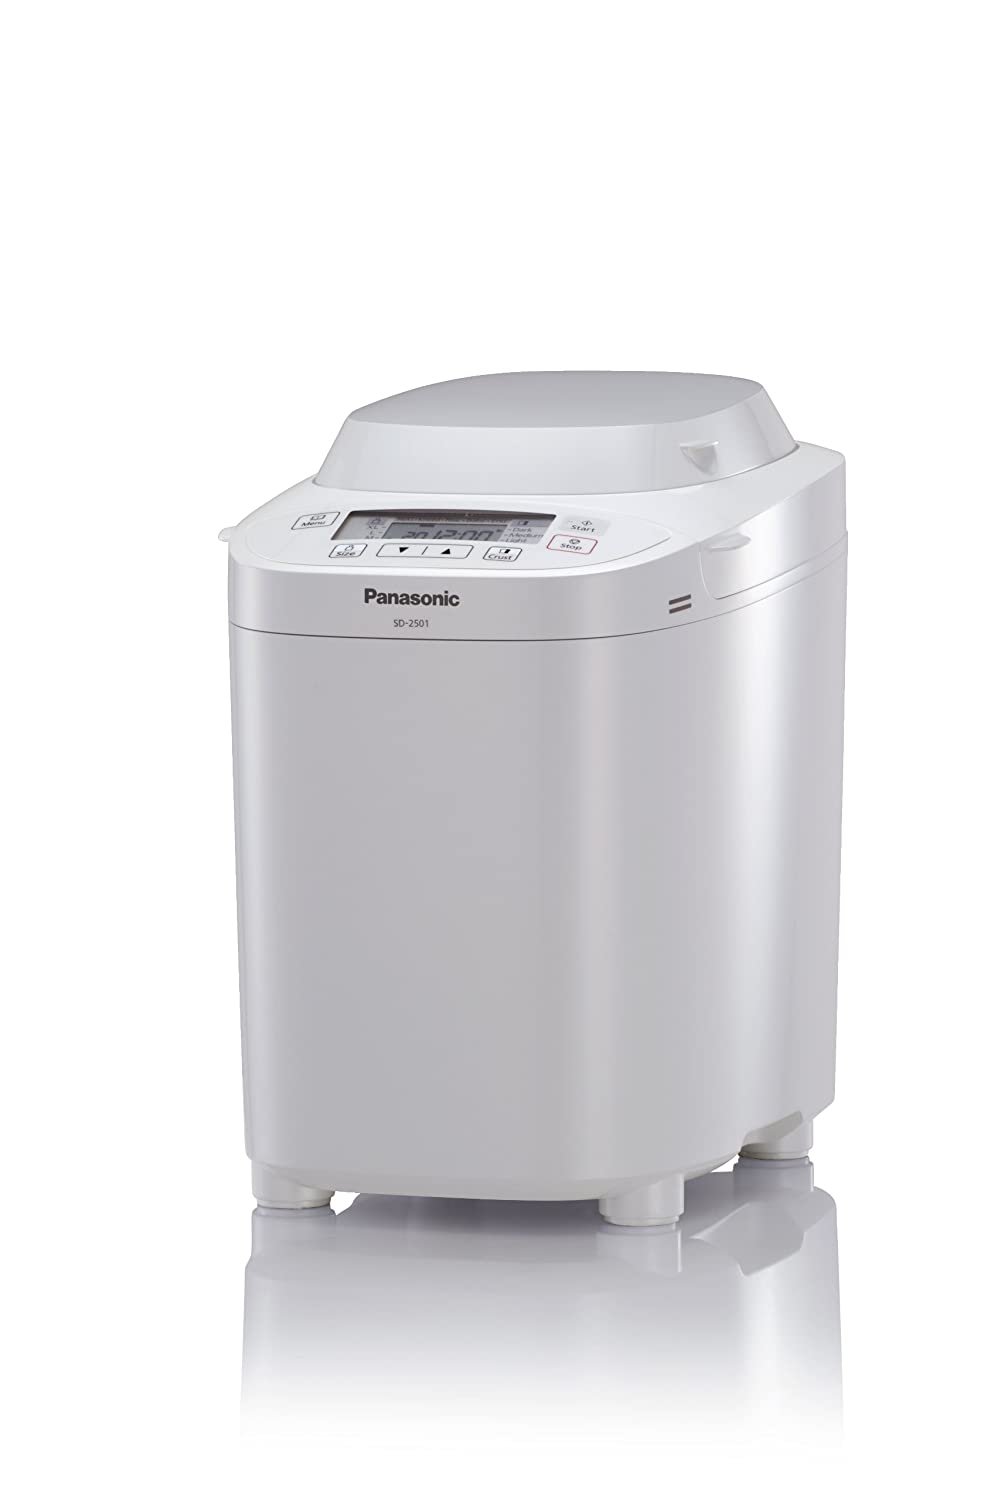 Panasonic SD-2501 WXC Automatic Breadmaker - White